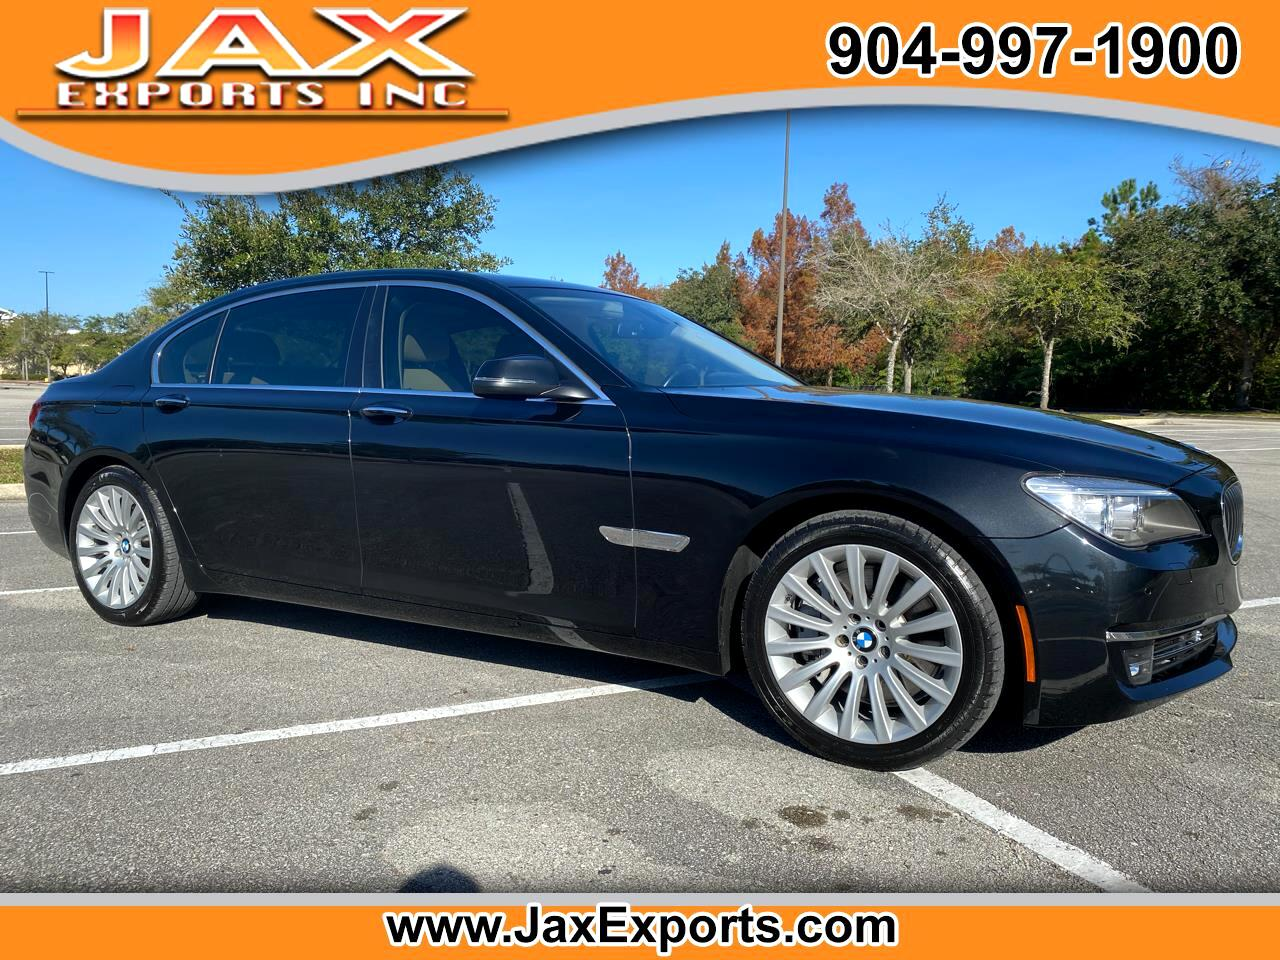 BMW 7 Series 750Li 4dr Sdn 2013